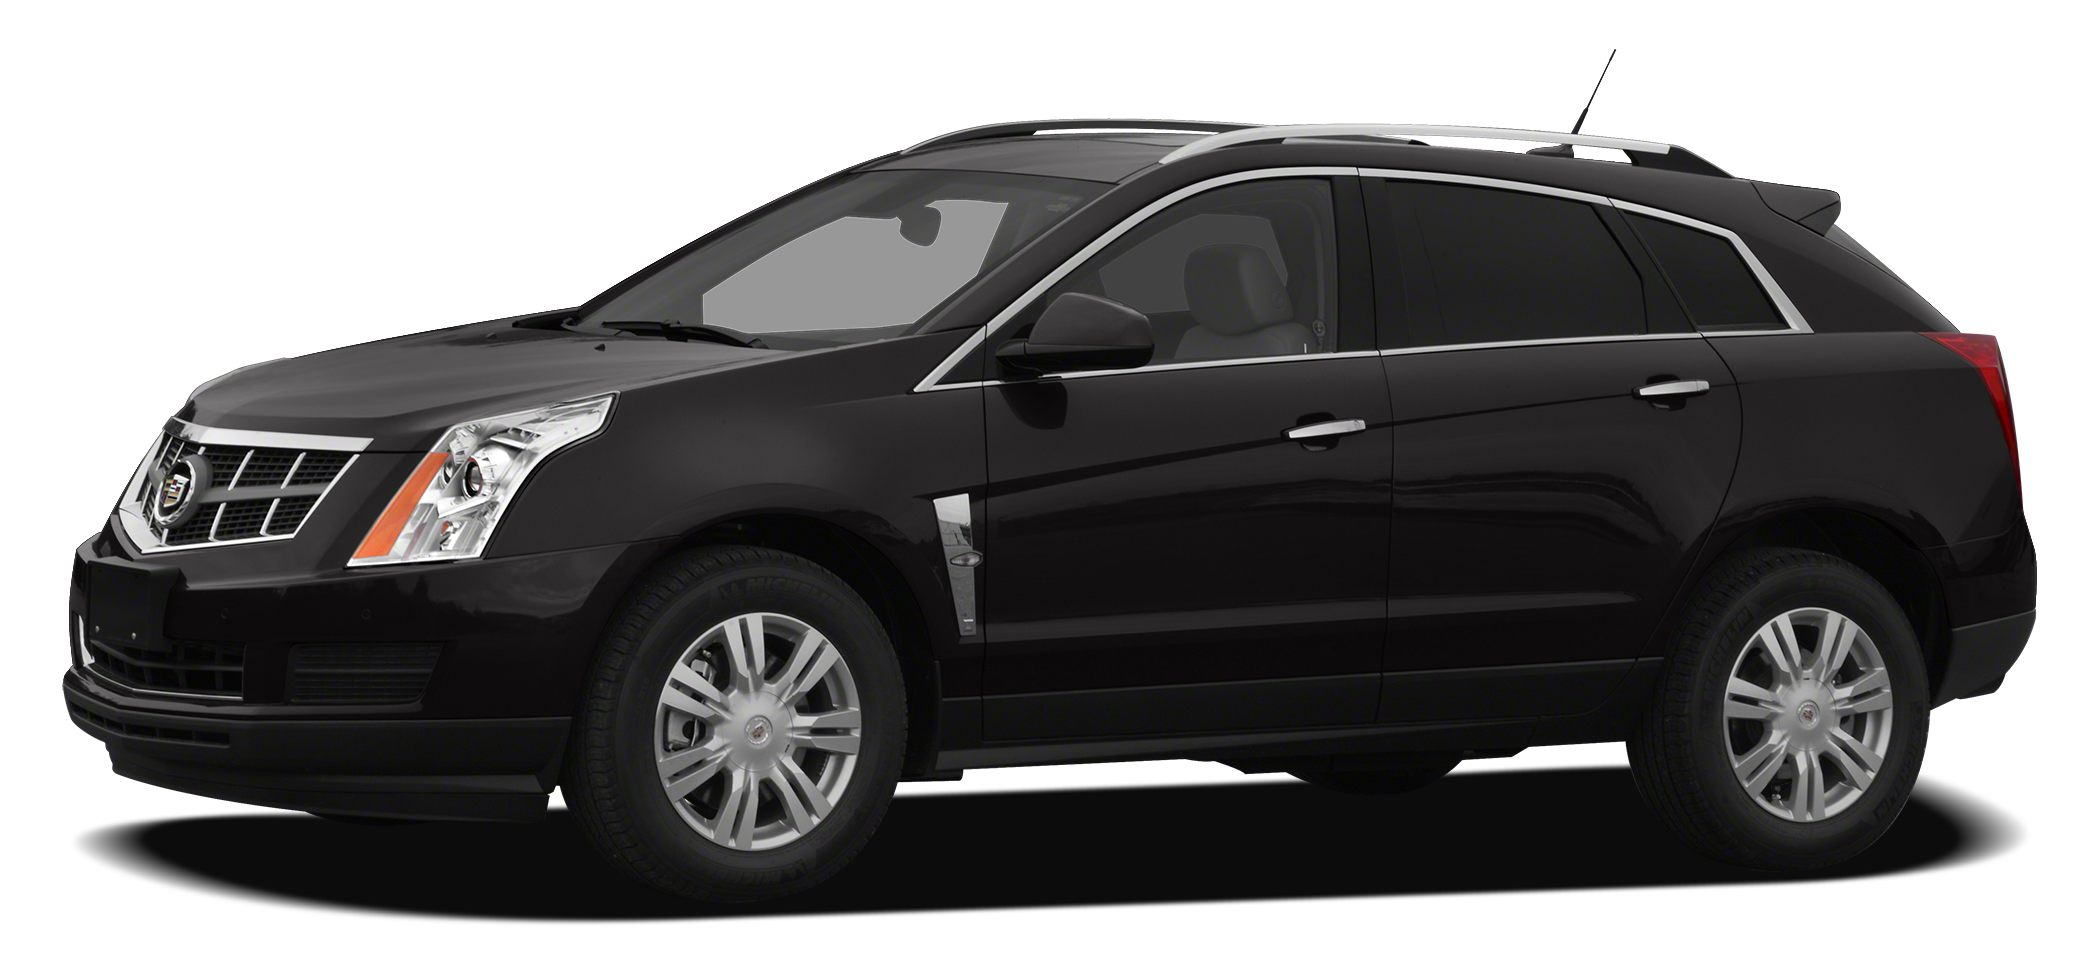 2012 Cadillac SRX Luxury Take a look at this Black Beauty its a 2012 SRX LUXURY 1 owner